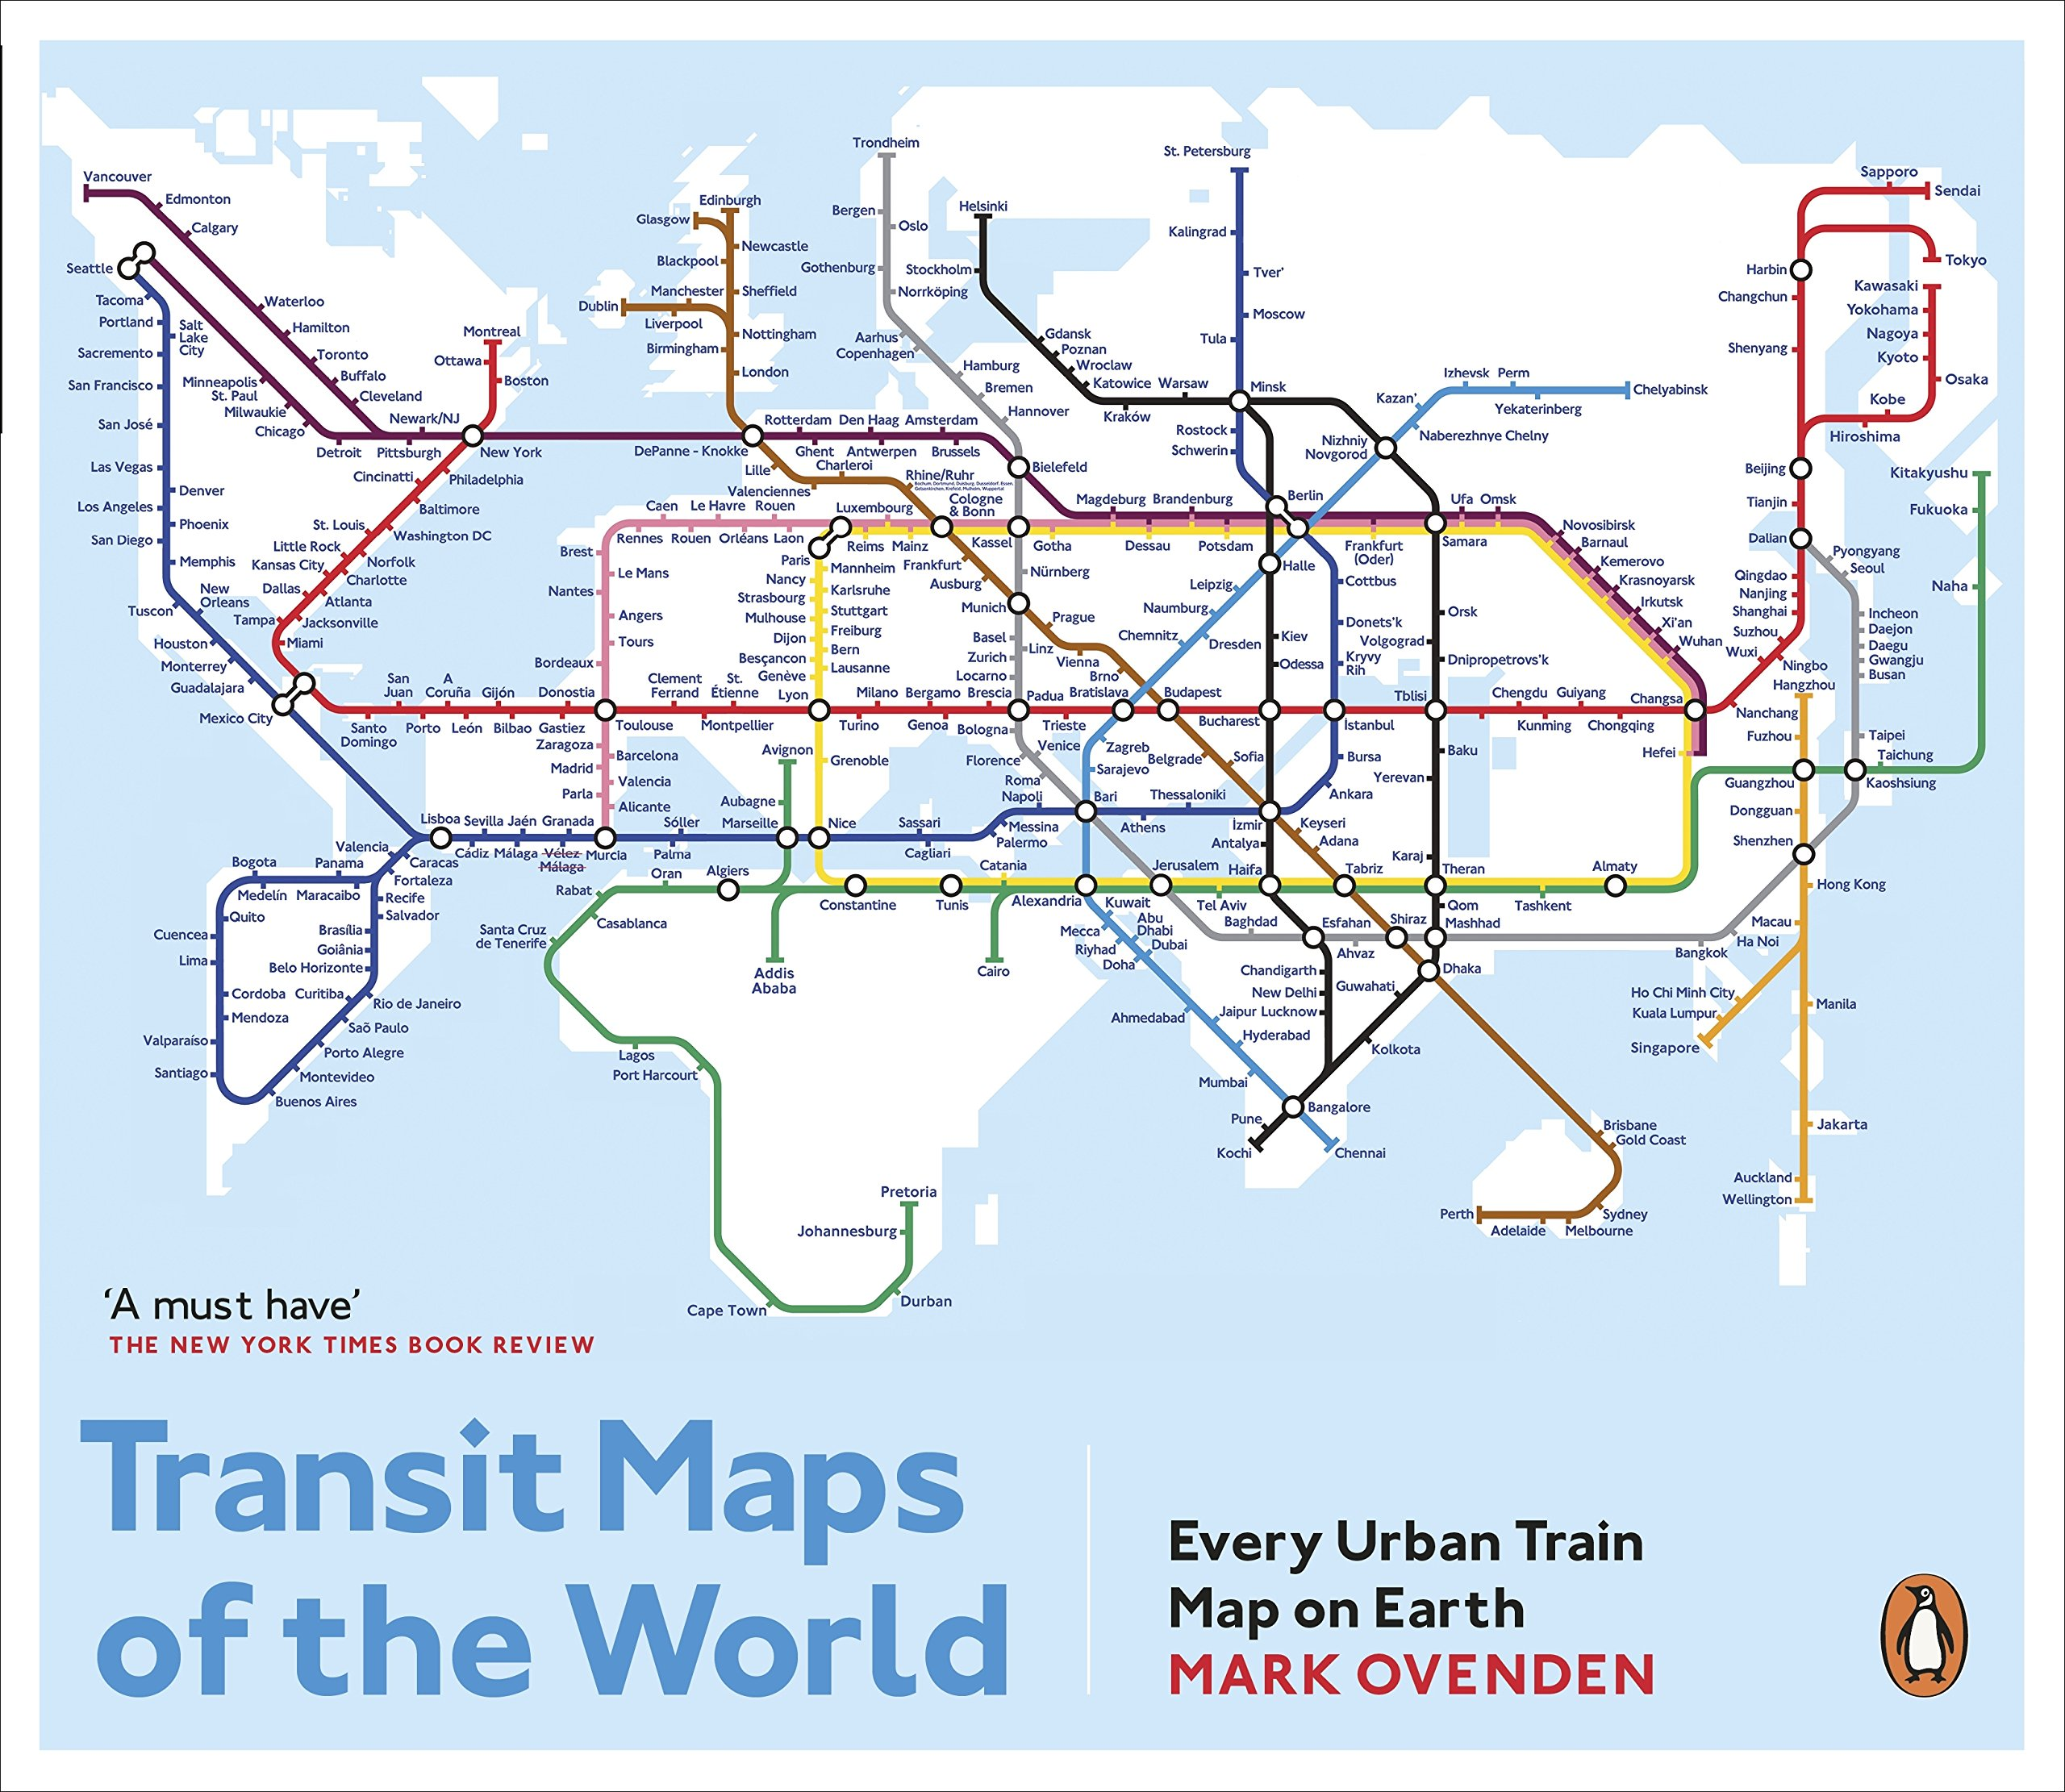 Map Of New York Rail System.Transit Maps Of The World Every Urban Train Map On Earth Amazon Co